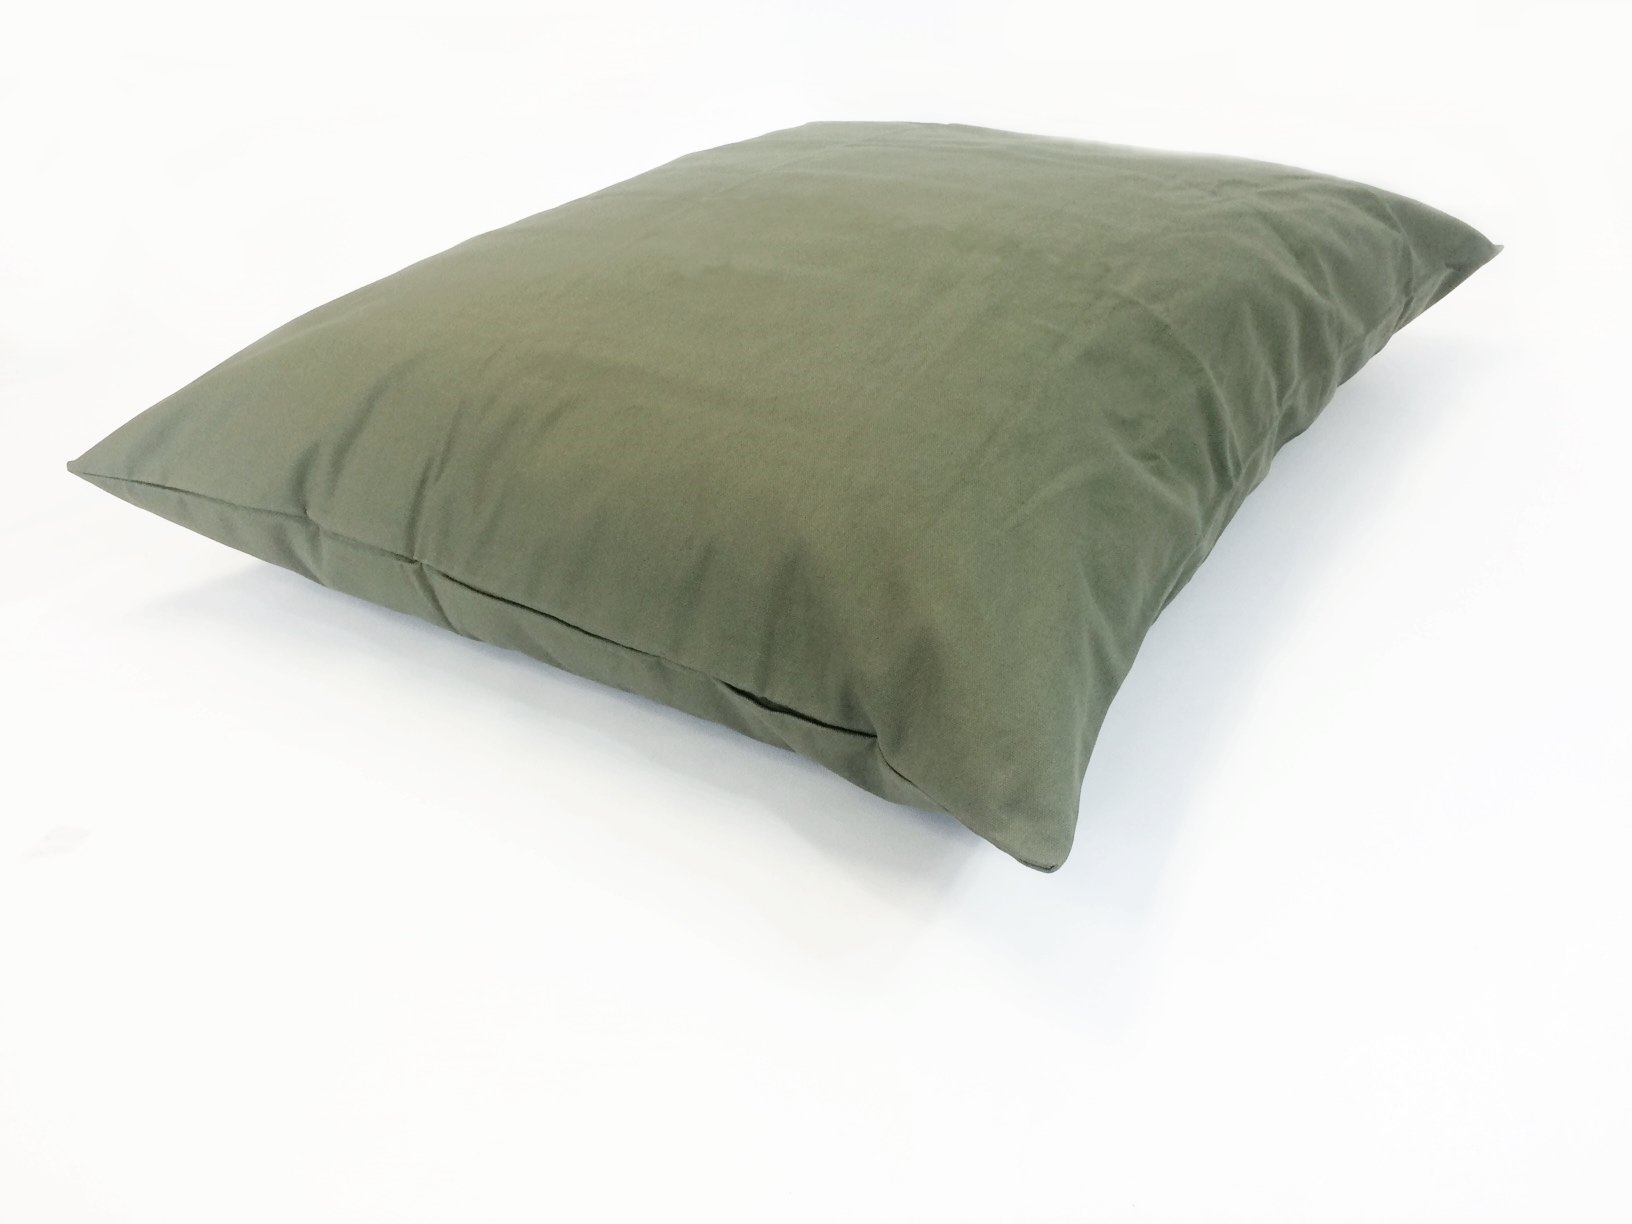 36''x29'' Medium Size MicroCushion High Density Memory Foam Soft Poly Fiber Waterproof Pet Pillow Bed with Removable Zippered Tough Strong Green Canvas Cover Case for Small to Medium Dogs by American Comfort Warehouse (Image #4)